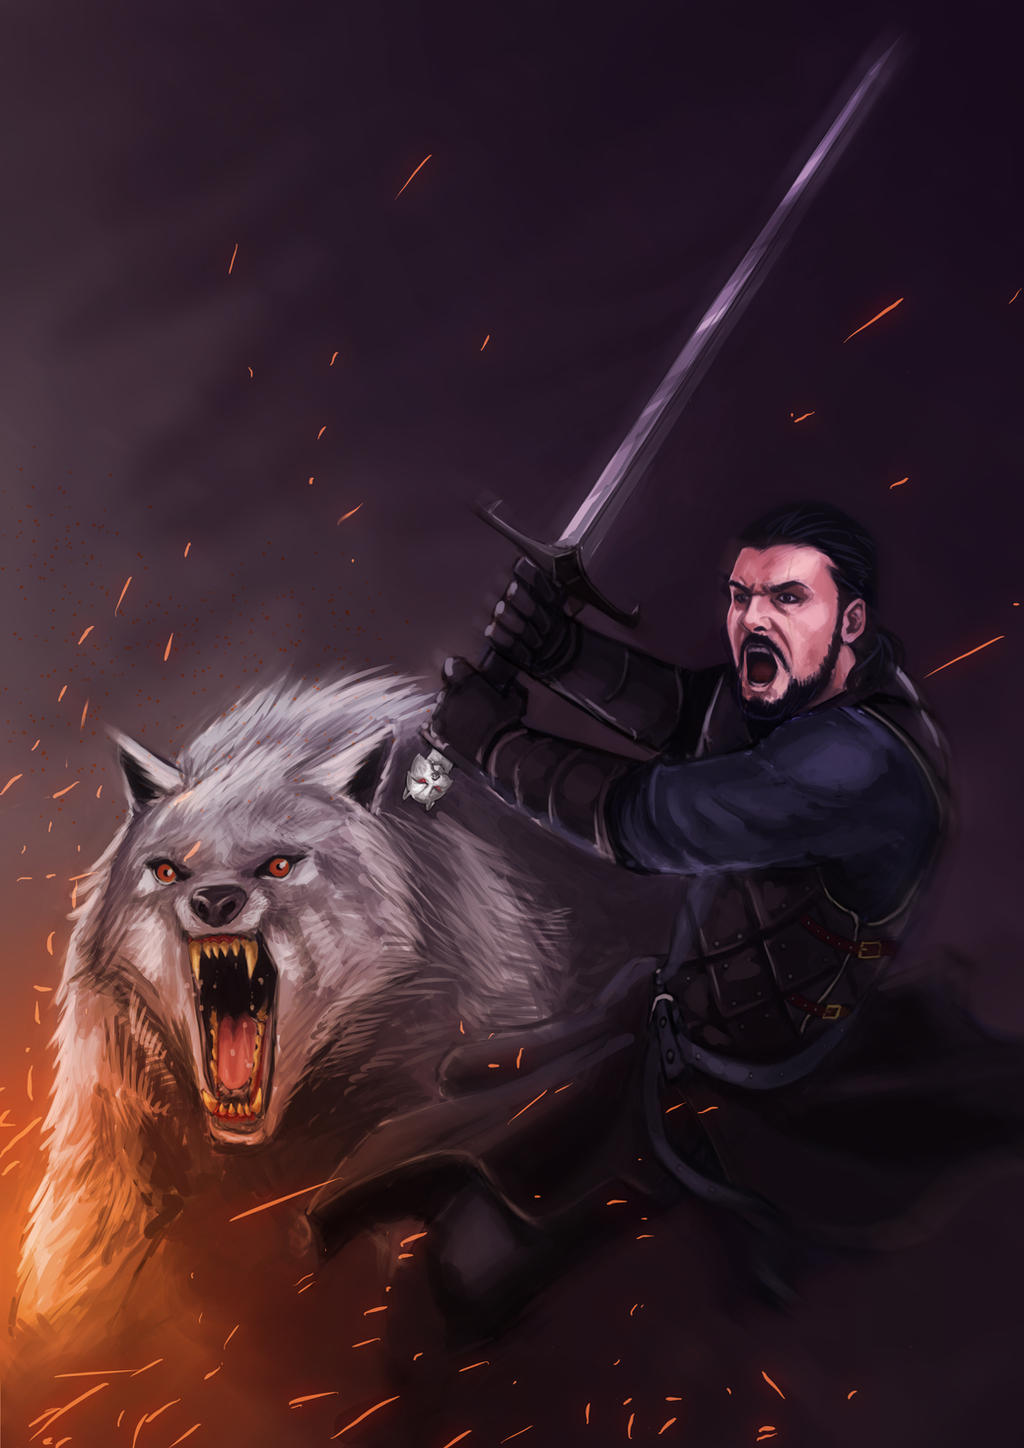 The King in the North! by DiegoVila